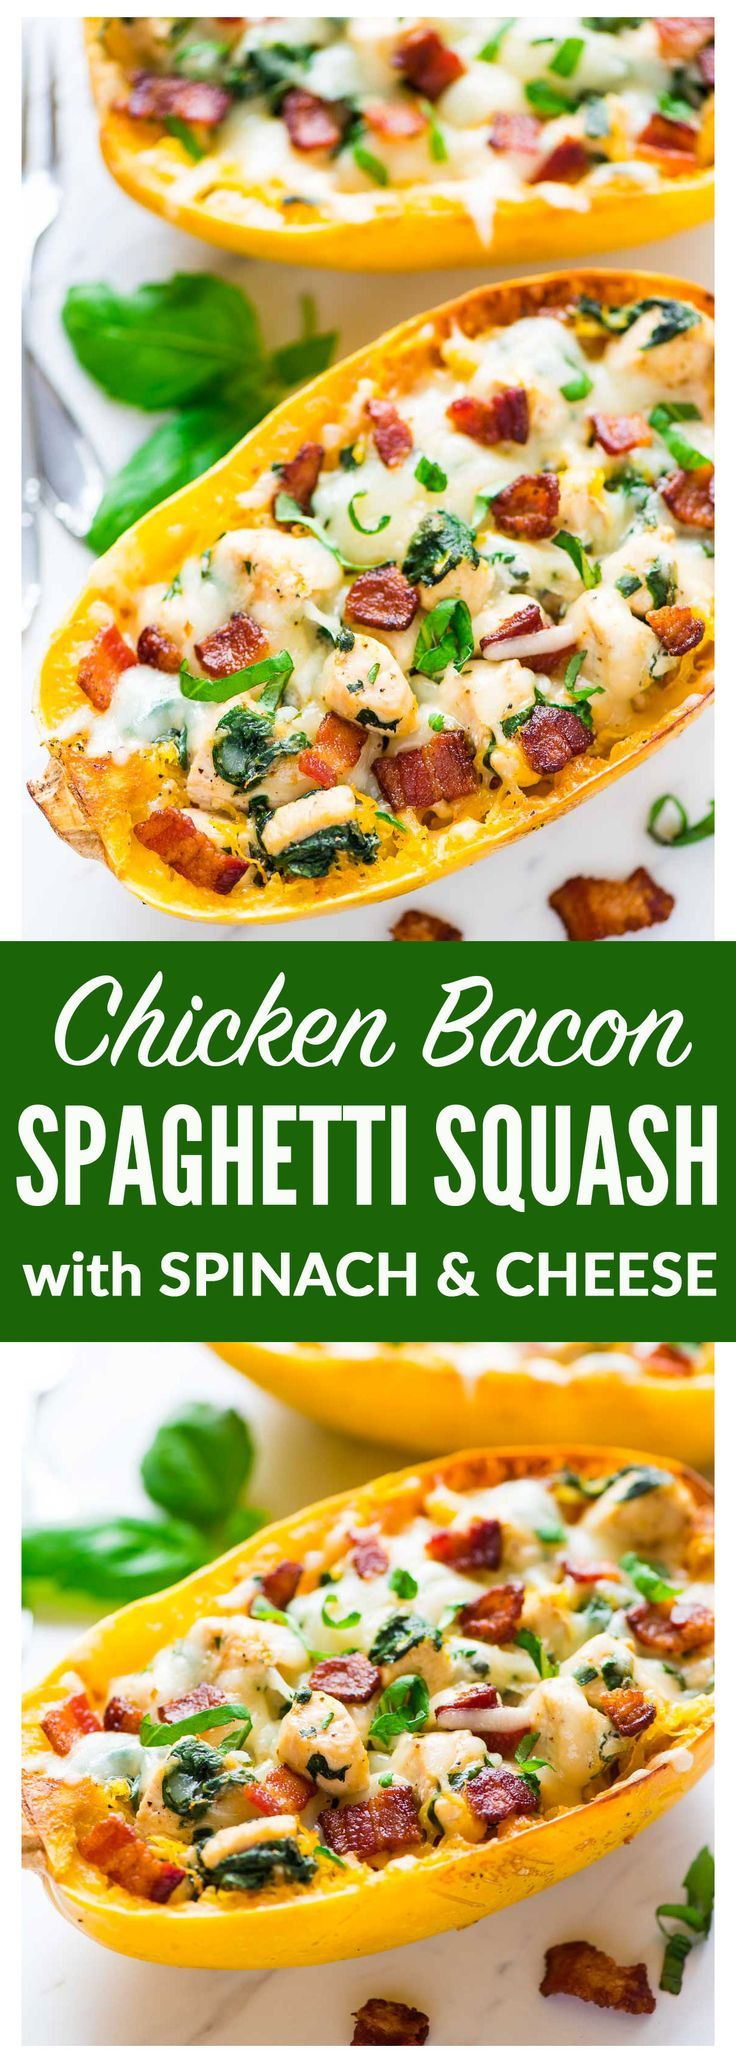 All Things Savory: Spaghetti Squash Boats with Chicken Bacon and Chee...